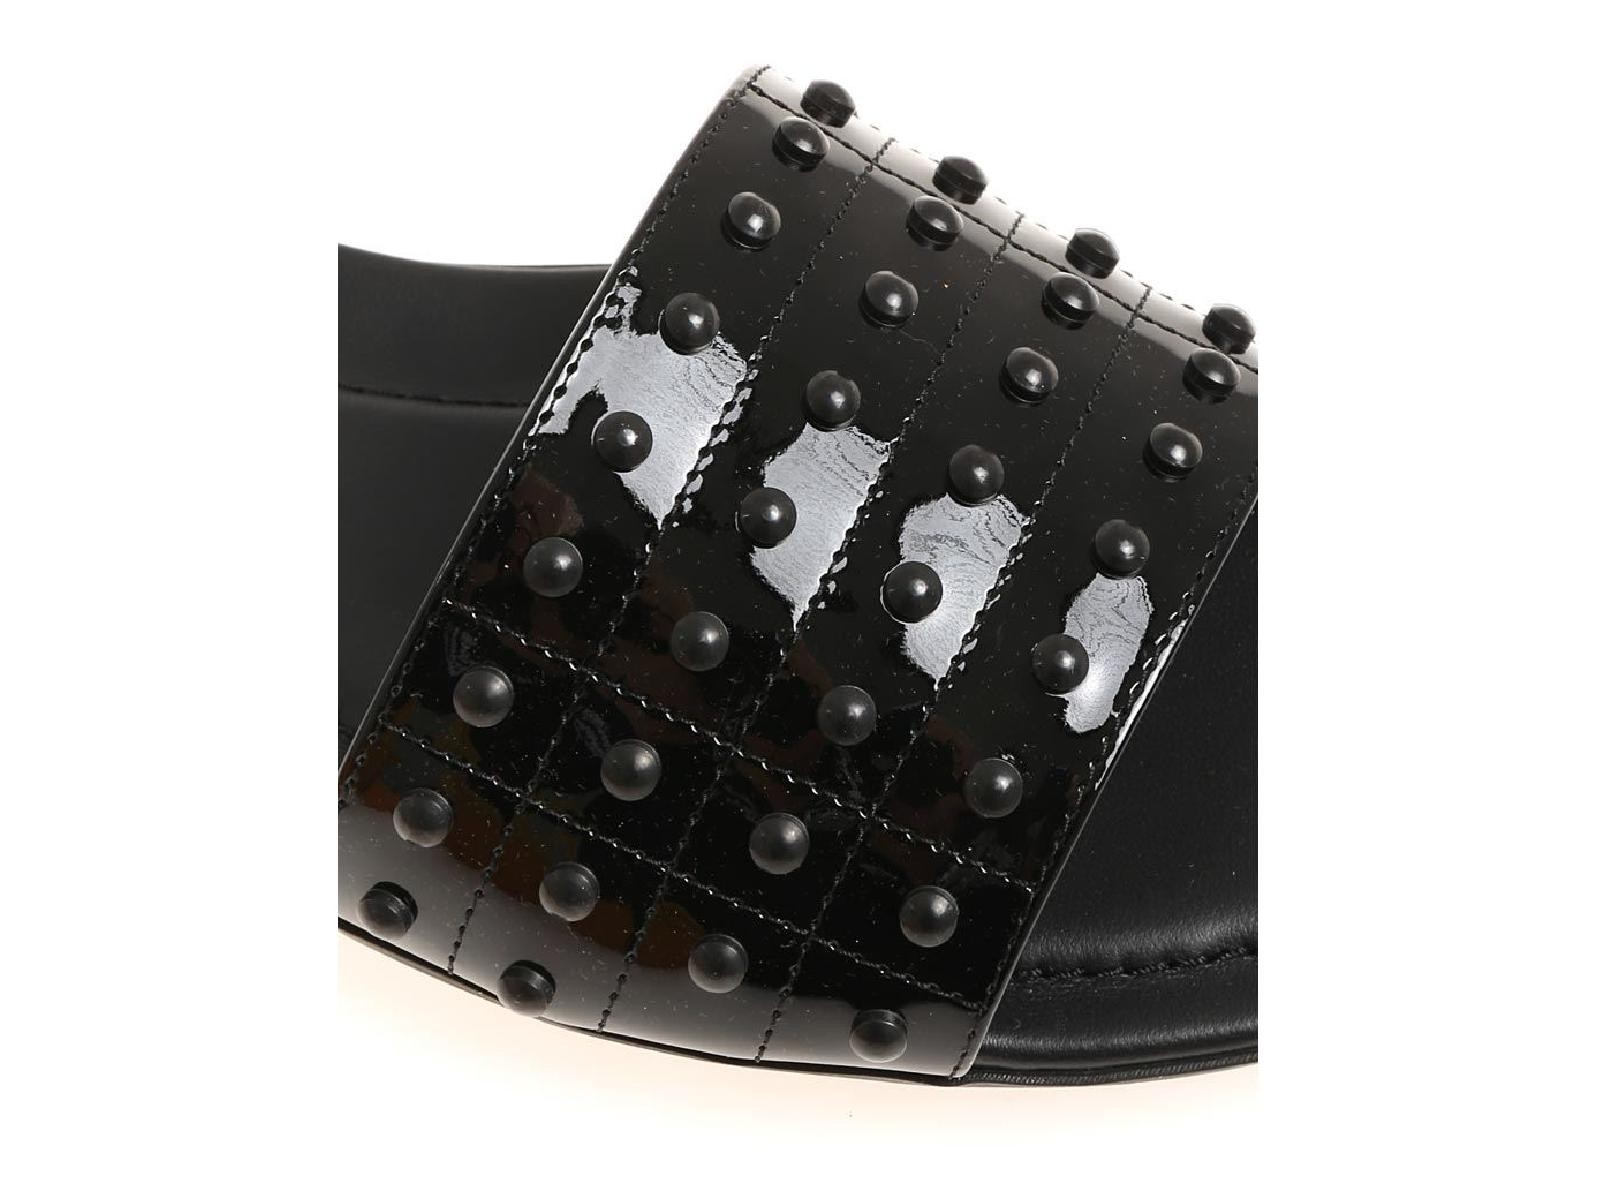 Tod-039-s-black-patent-leather-flat-slide-mules-italian-luxury-sandals-with-studs thumbnail 8